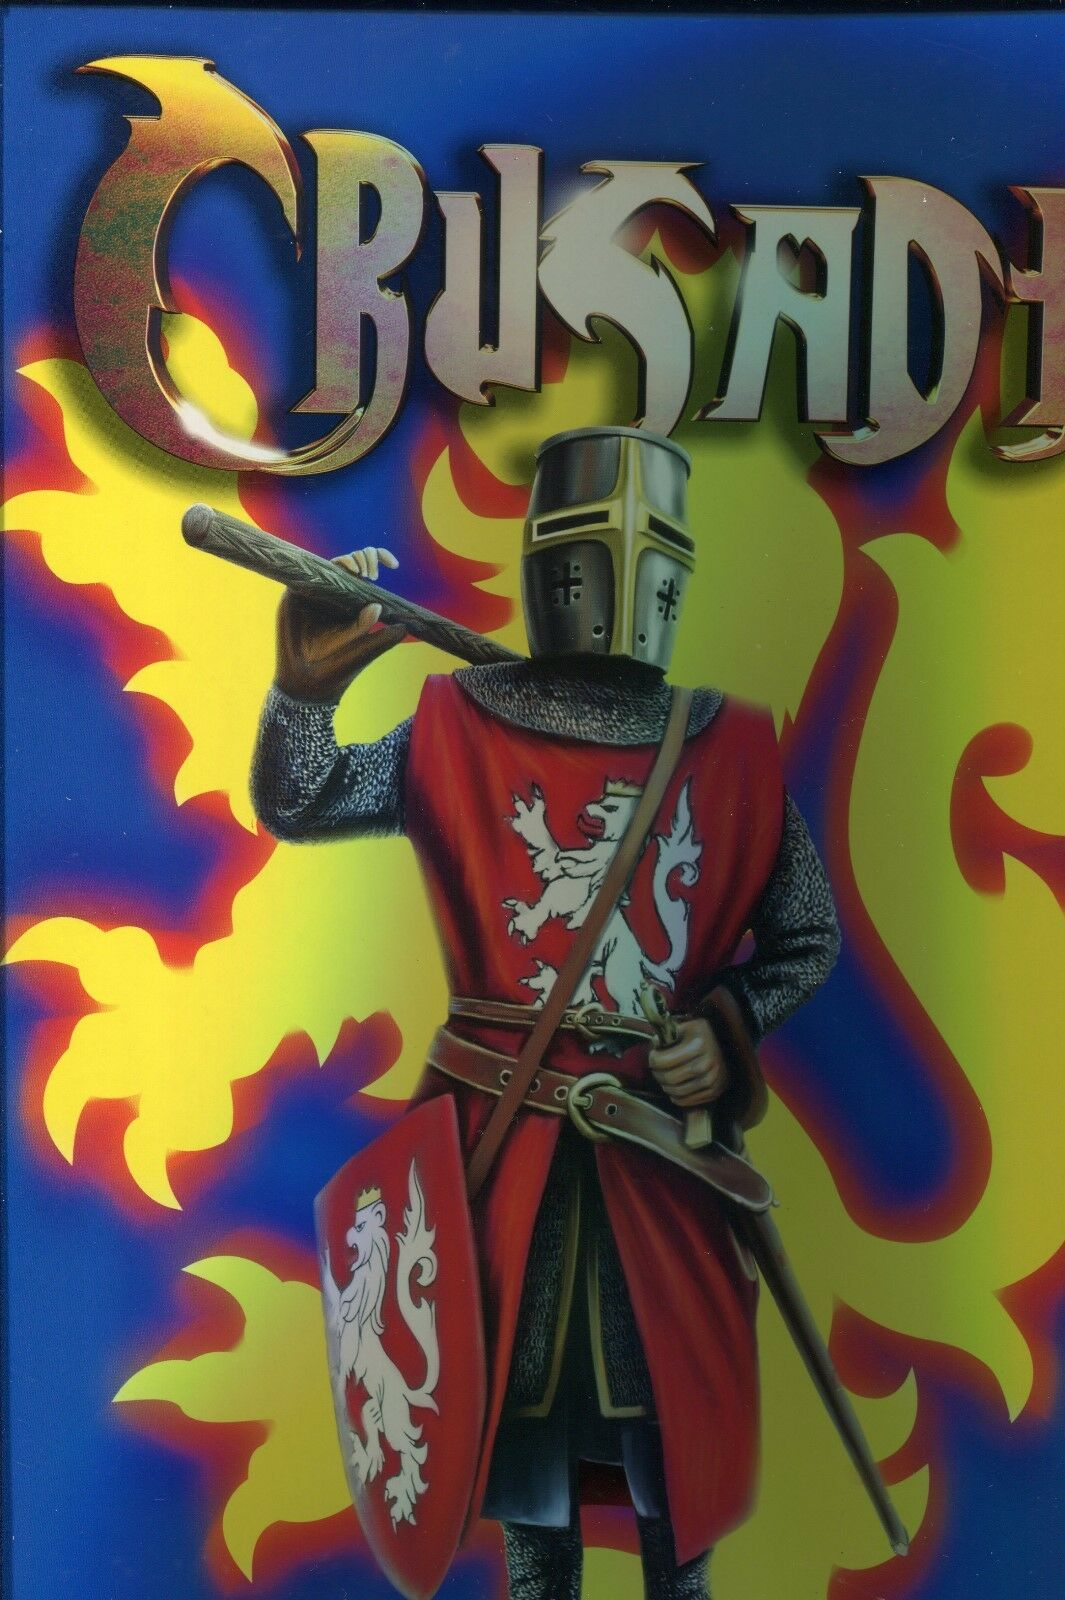 Crusader Knight - Sean Connery 1/6 scale